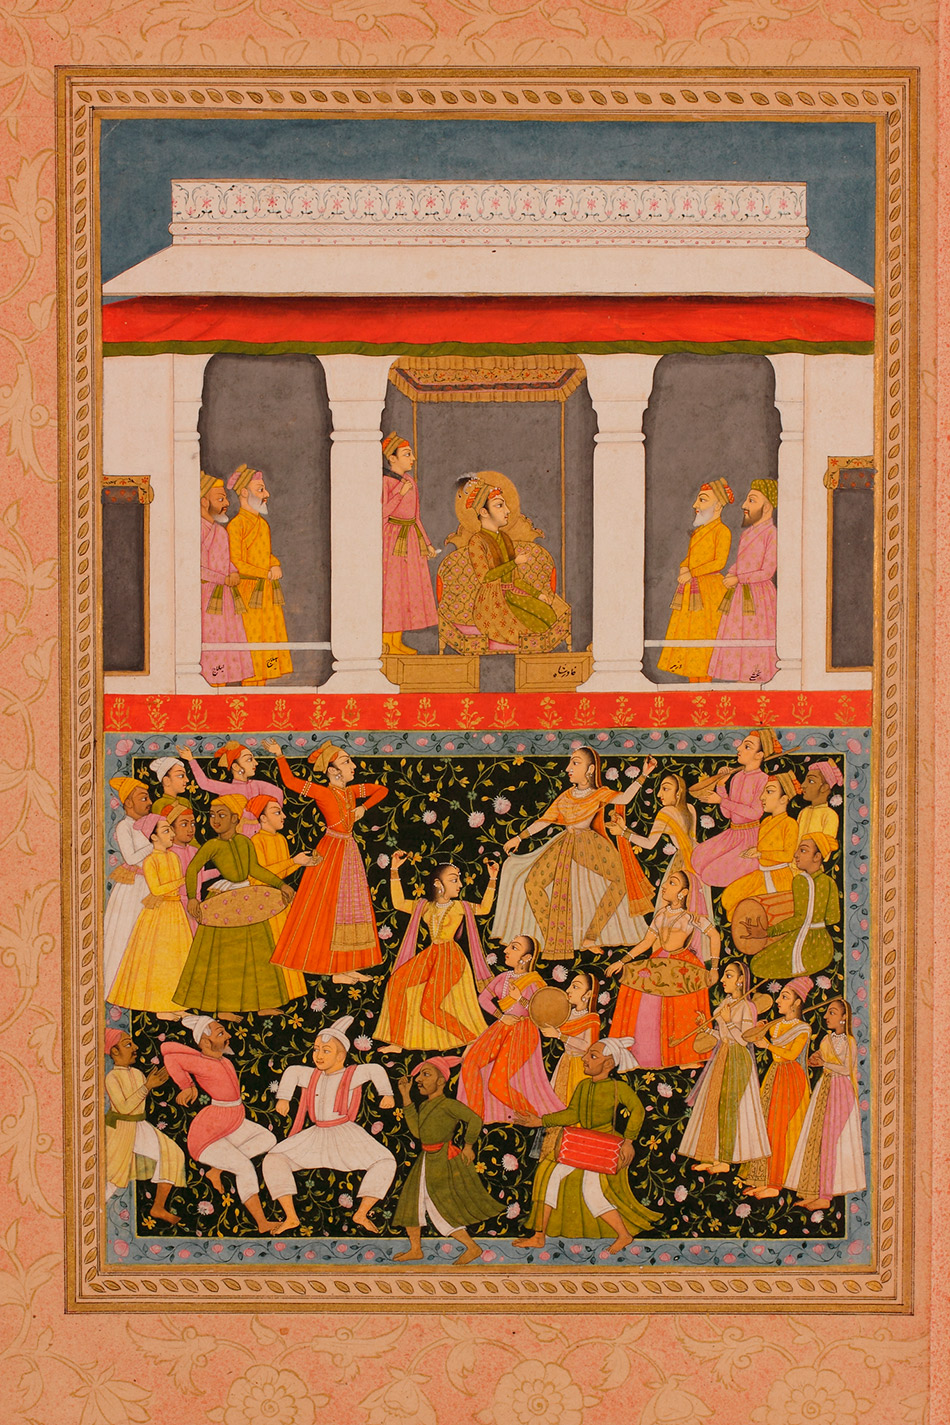 41.1122_Unknown,-Khavar-Shah-Celebrates-the-Reunion-of-Mihr-and-Mah-Folio-from-a-dispersed_950w